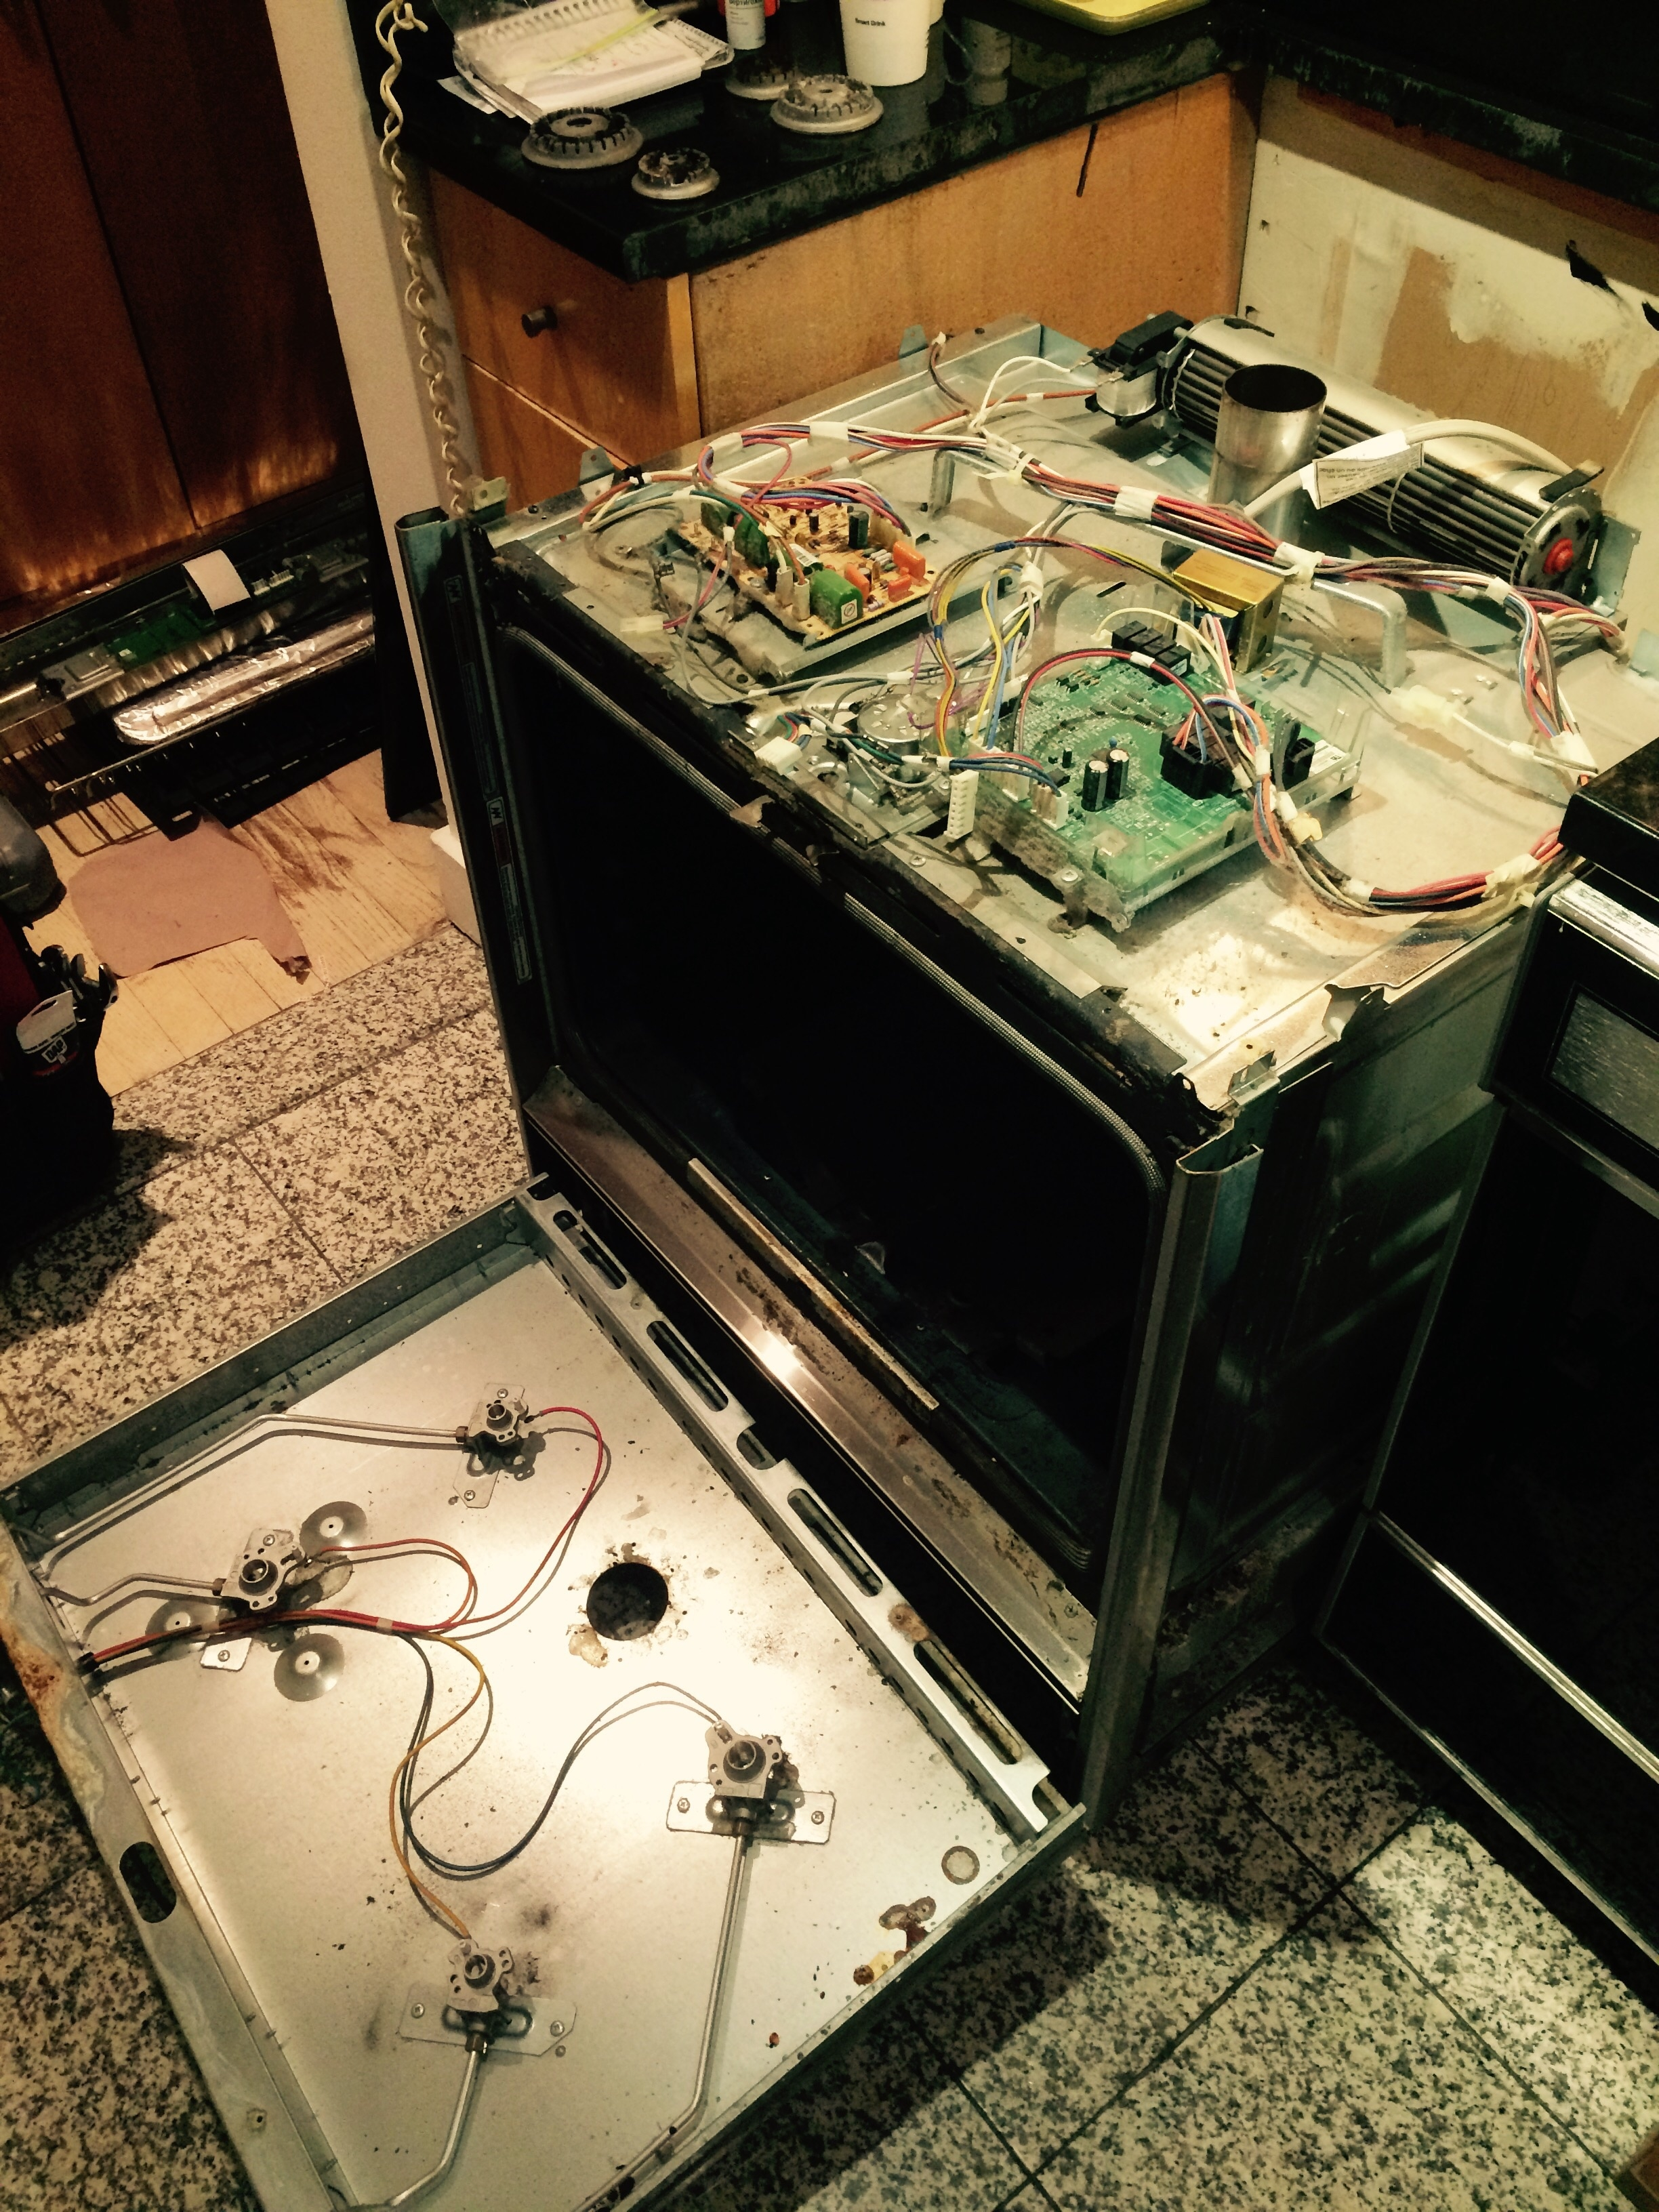 Global Solutions Appliance Repair image 41